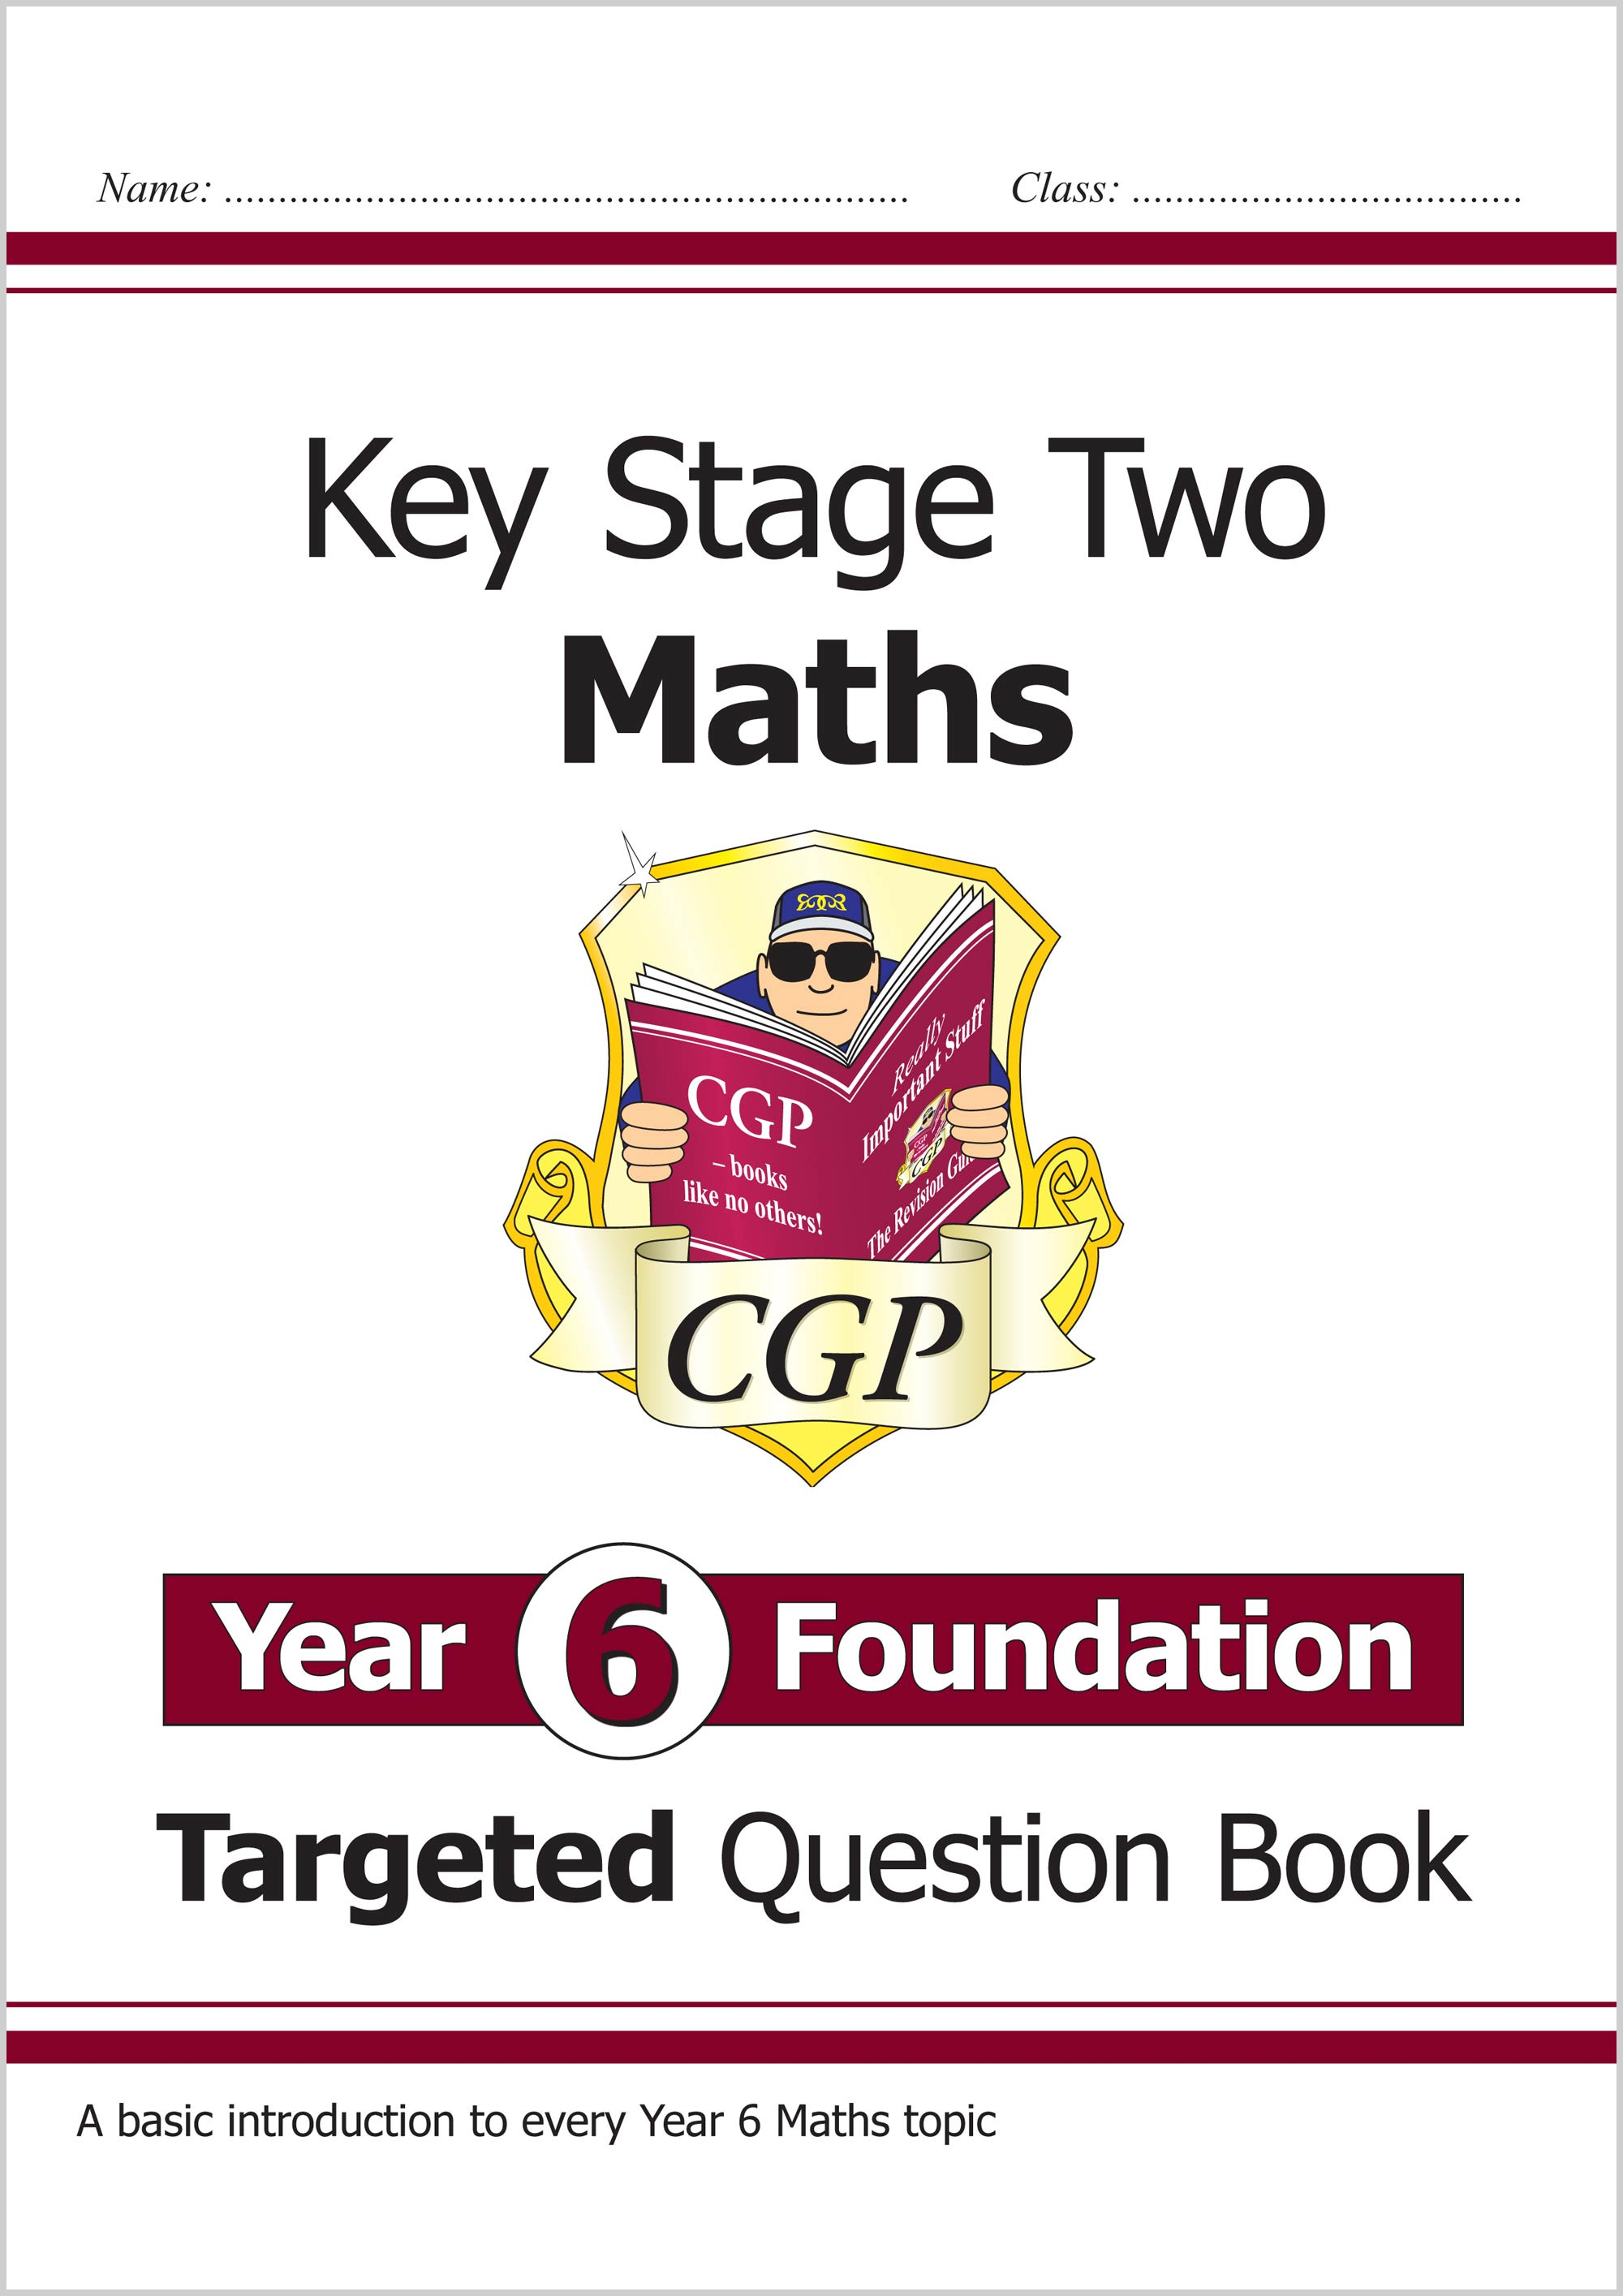 M6FQ21 - KS2 Maths Targeted Question Book: Year 6 Foundation